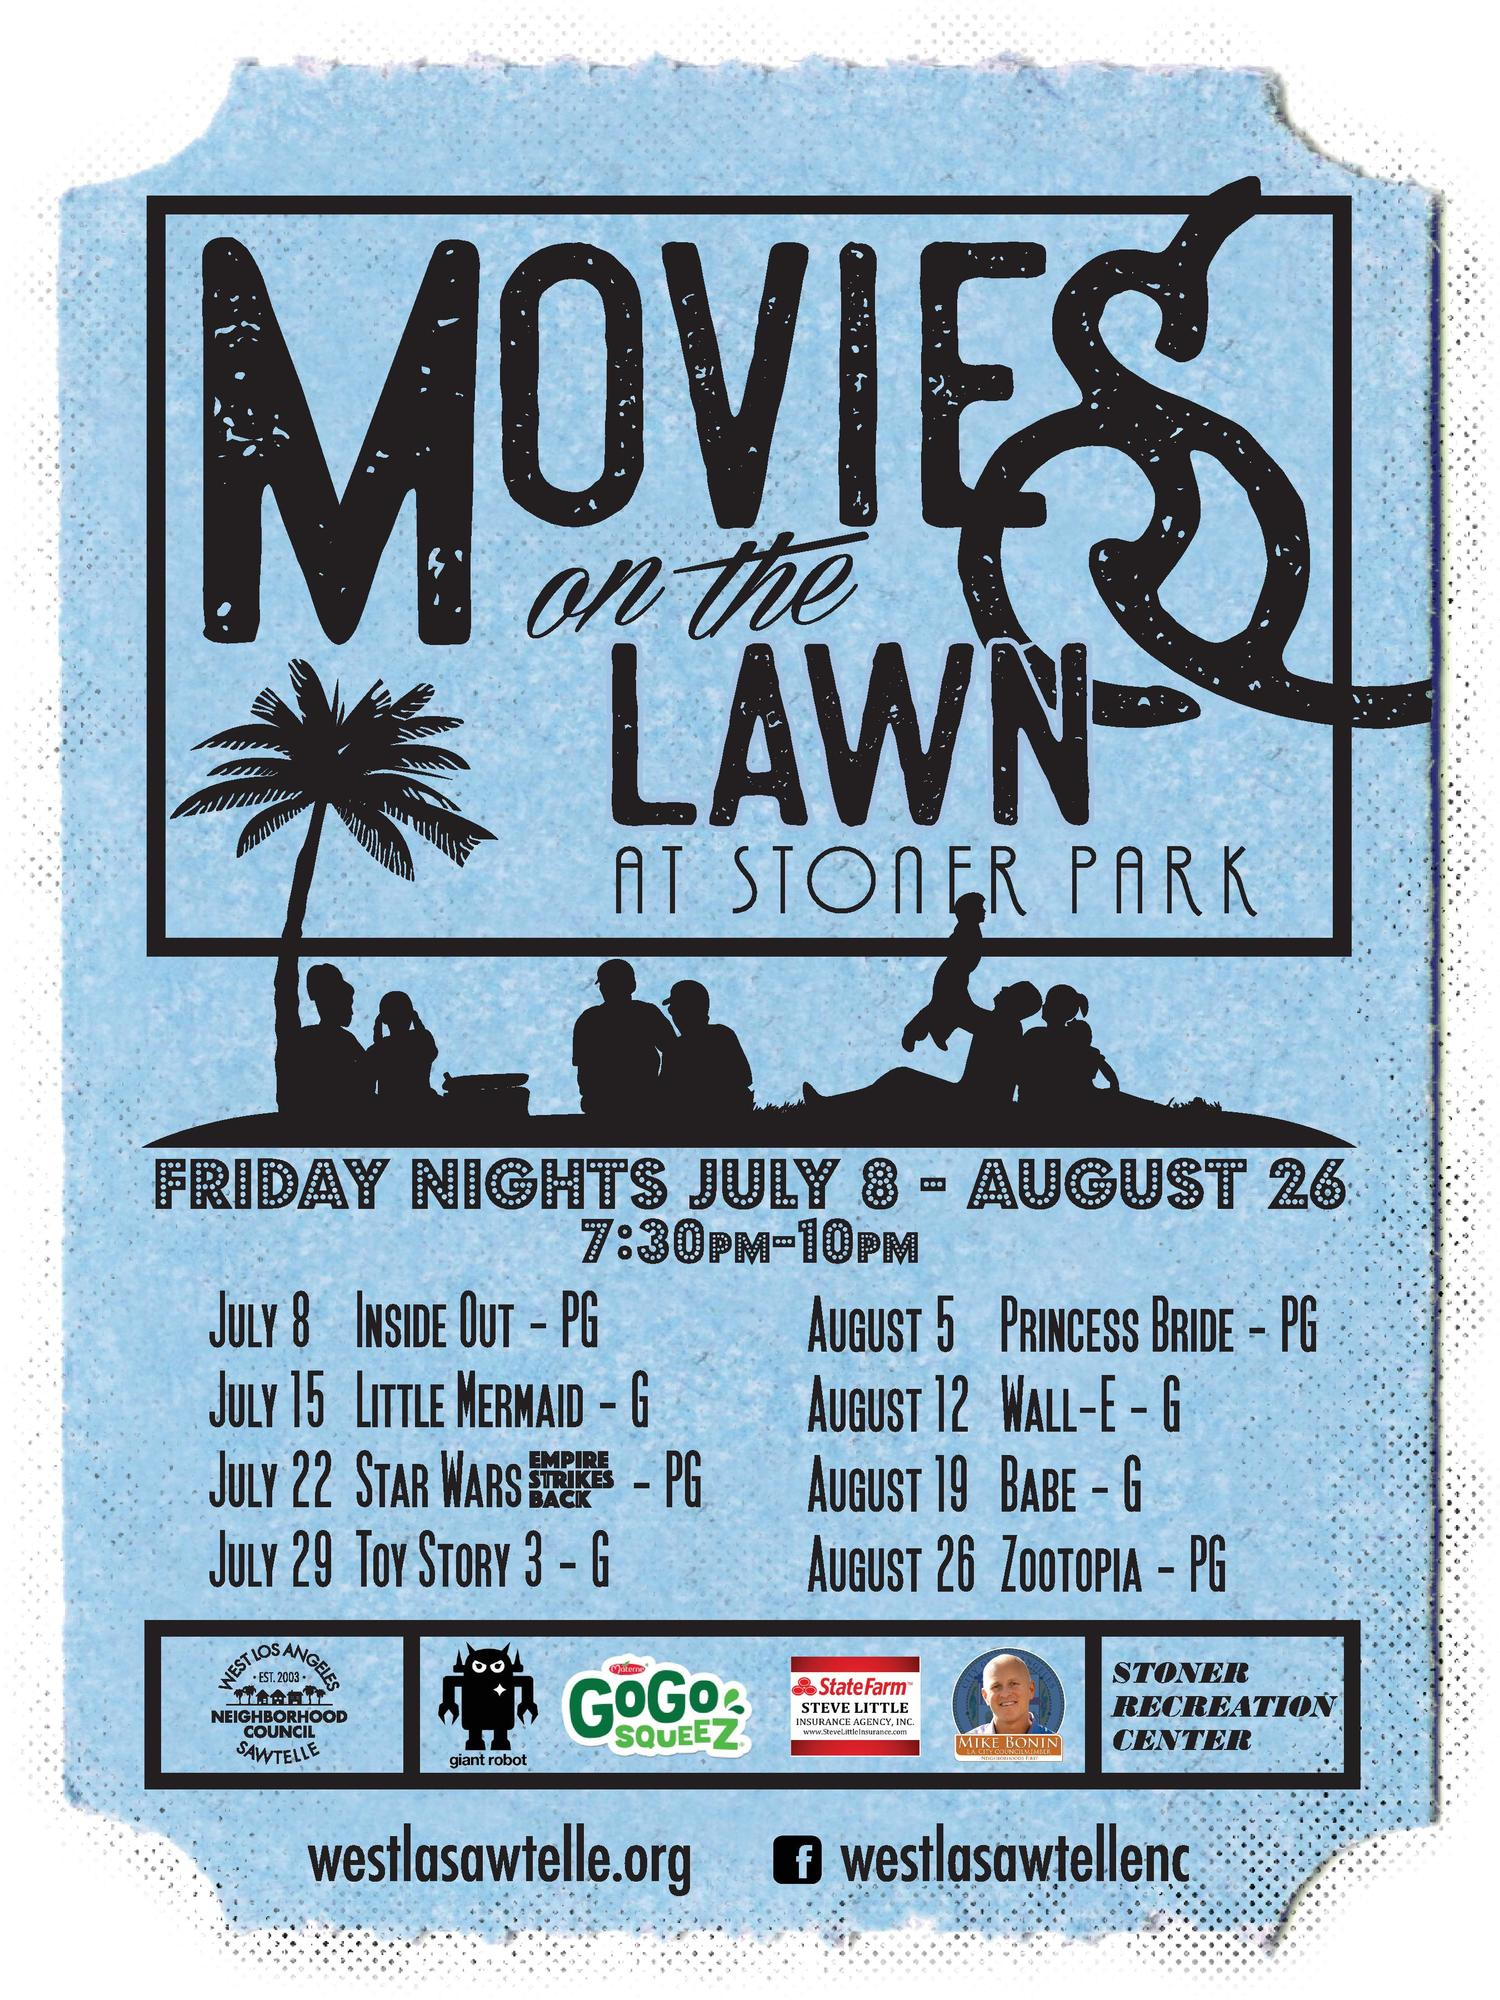 8th Annual Summer Movies on the Lawn — WLASNC